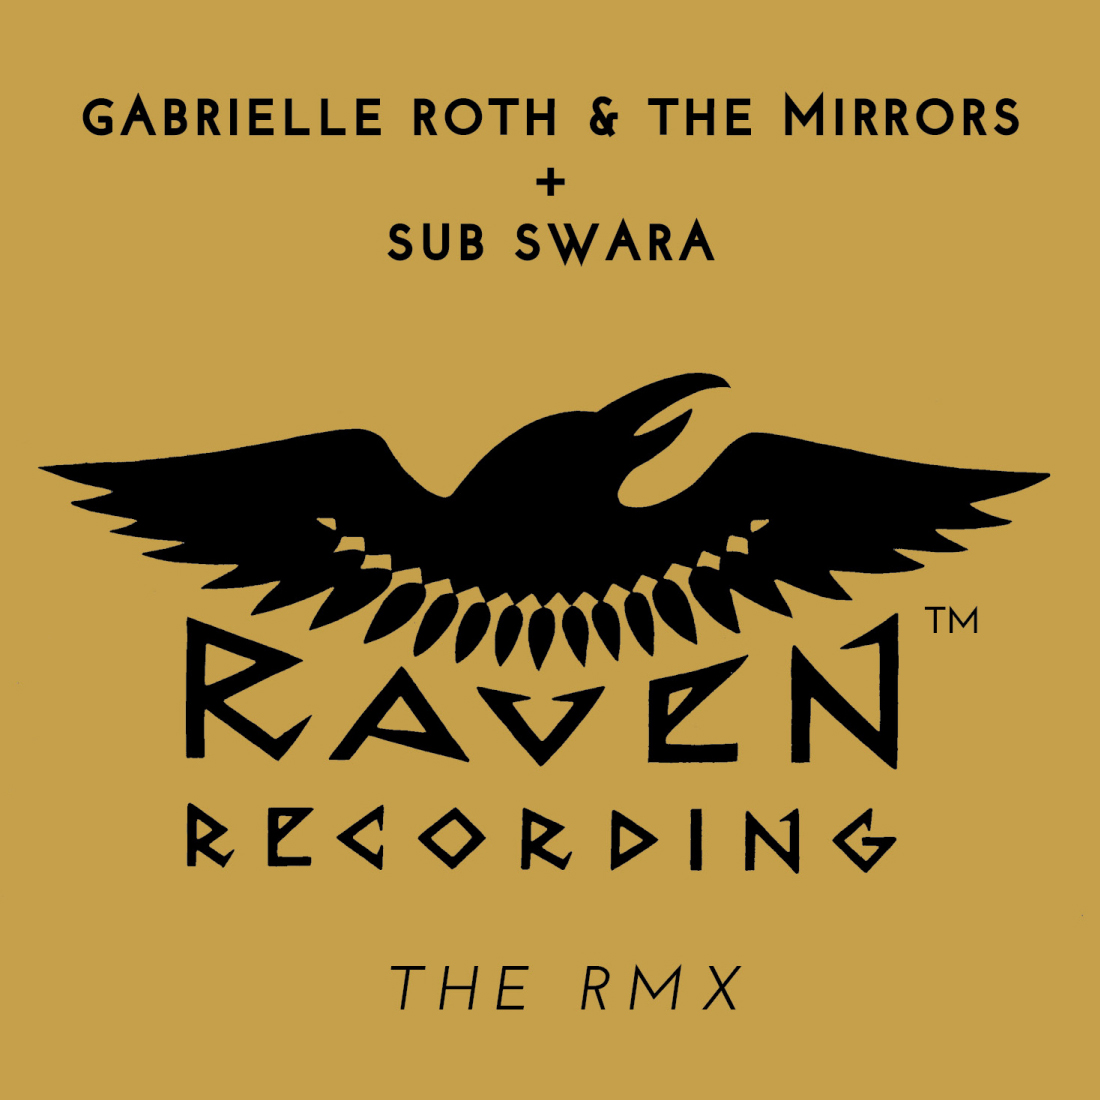 Gabrielle Roth & The Mirrors - Raven The Rmx